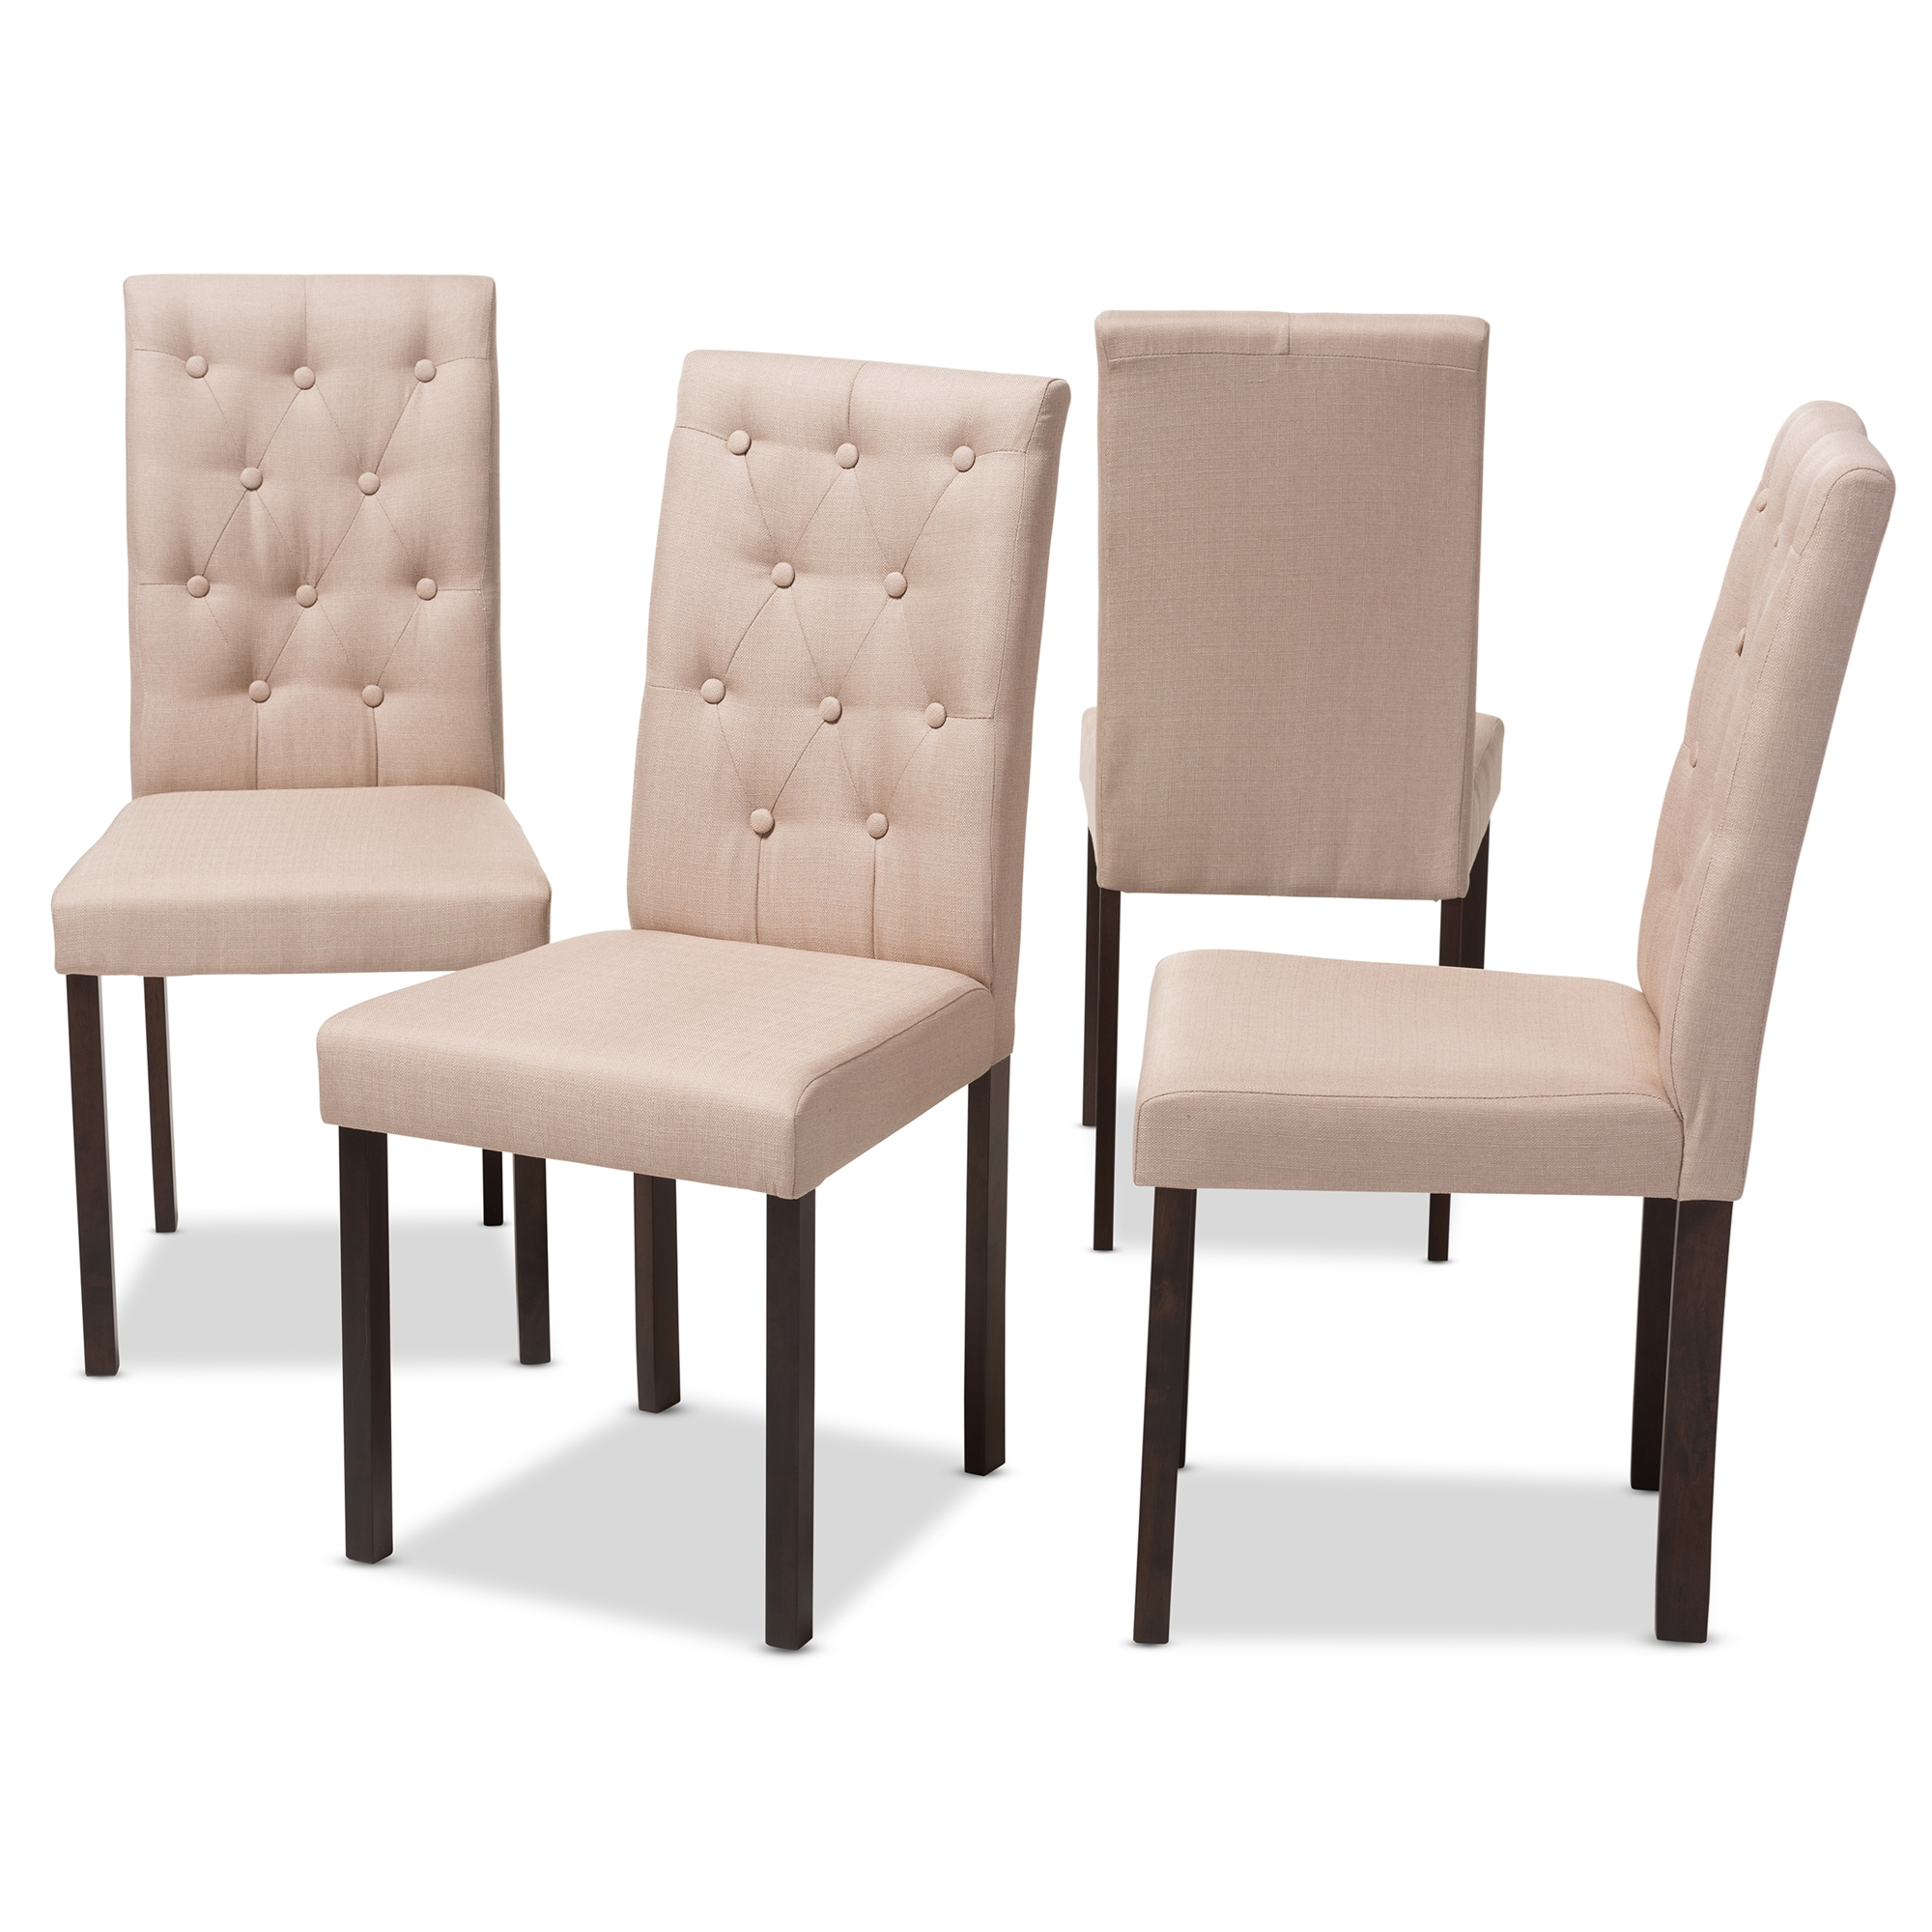 ... Baxton Studio Gardner Modern And Contemporary 5 Piece Dark Brown  Finished Beige Fabric Upholstered Dining ...